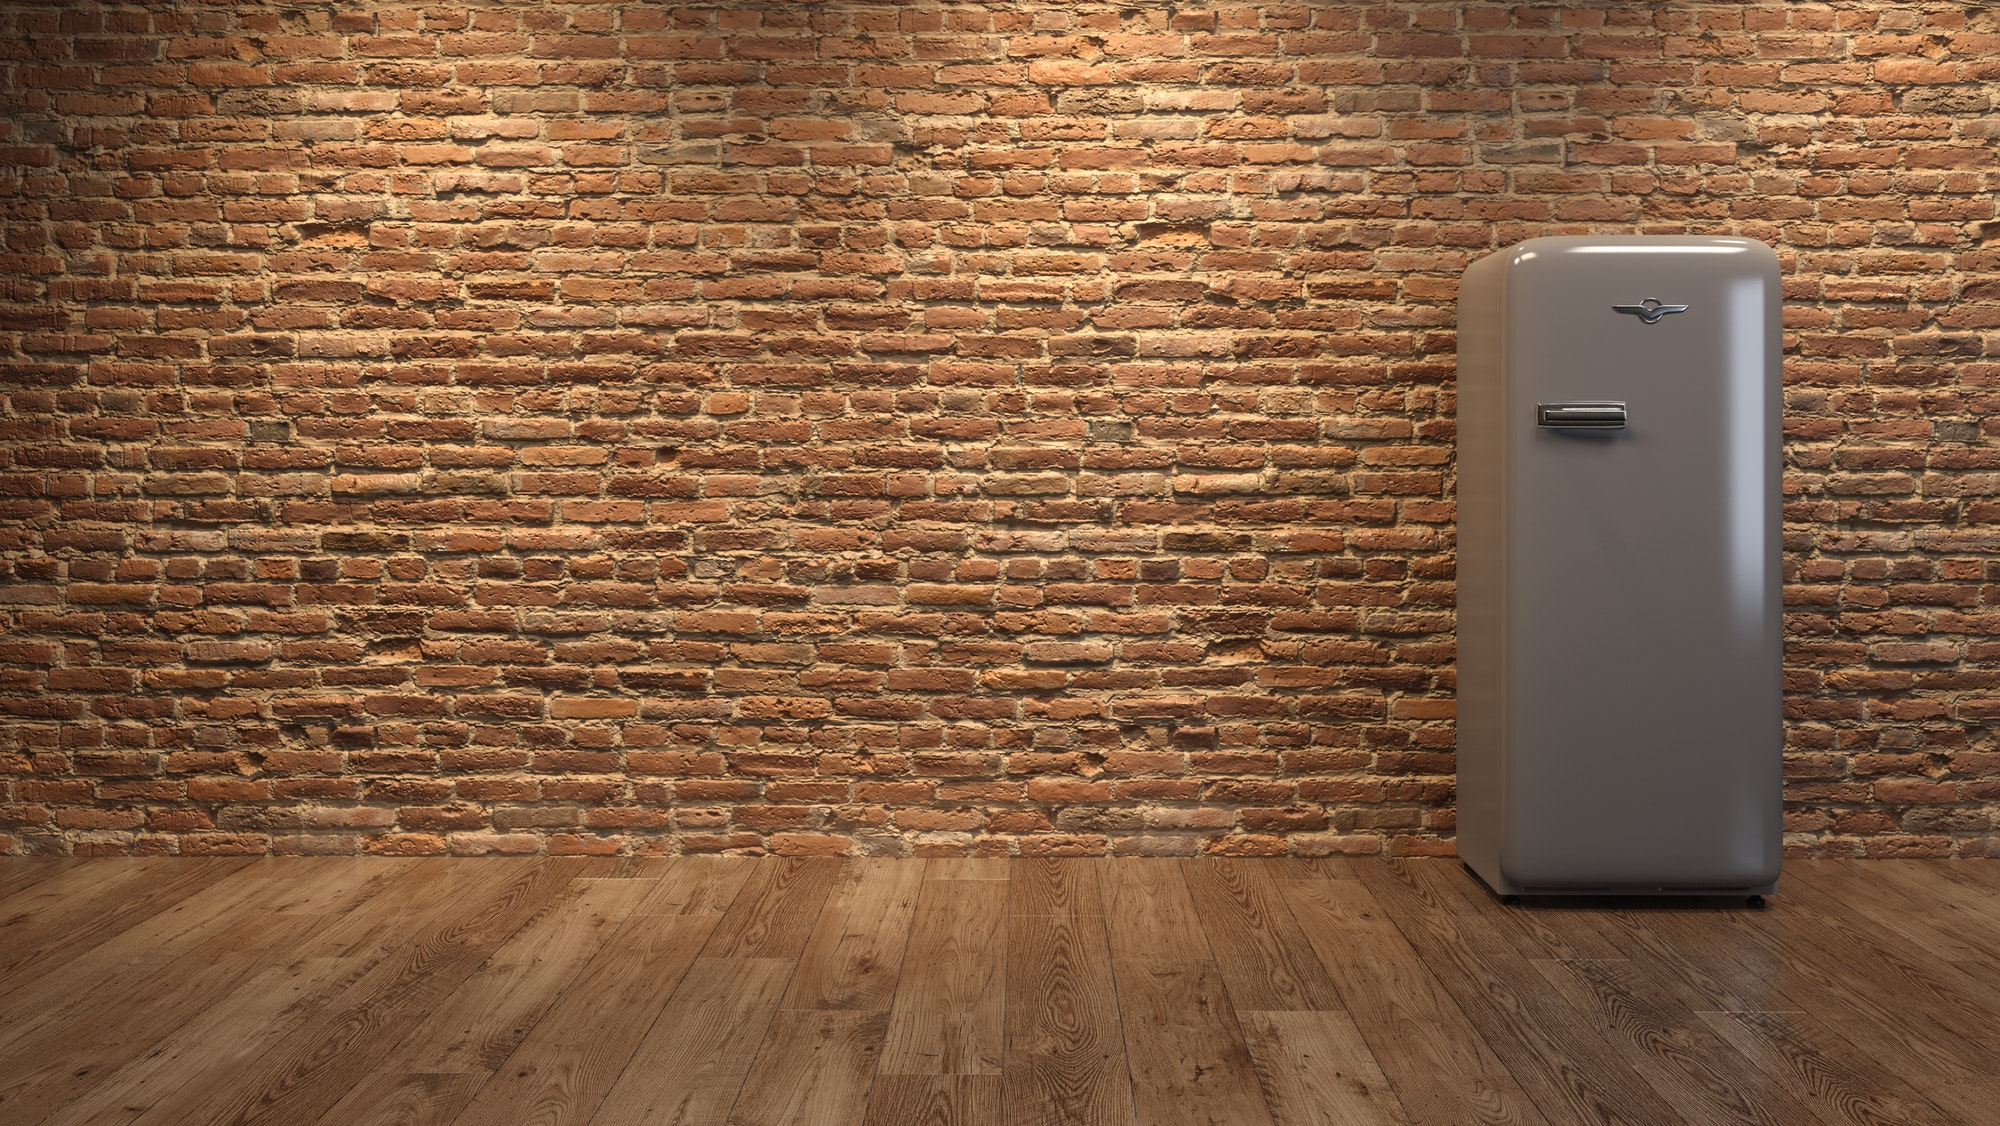 Interior with grey fridge and brick wall 3D illustration